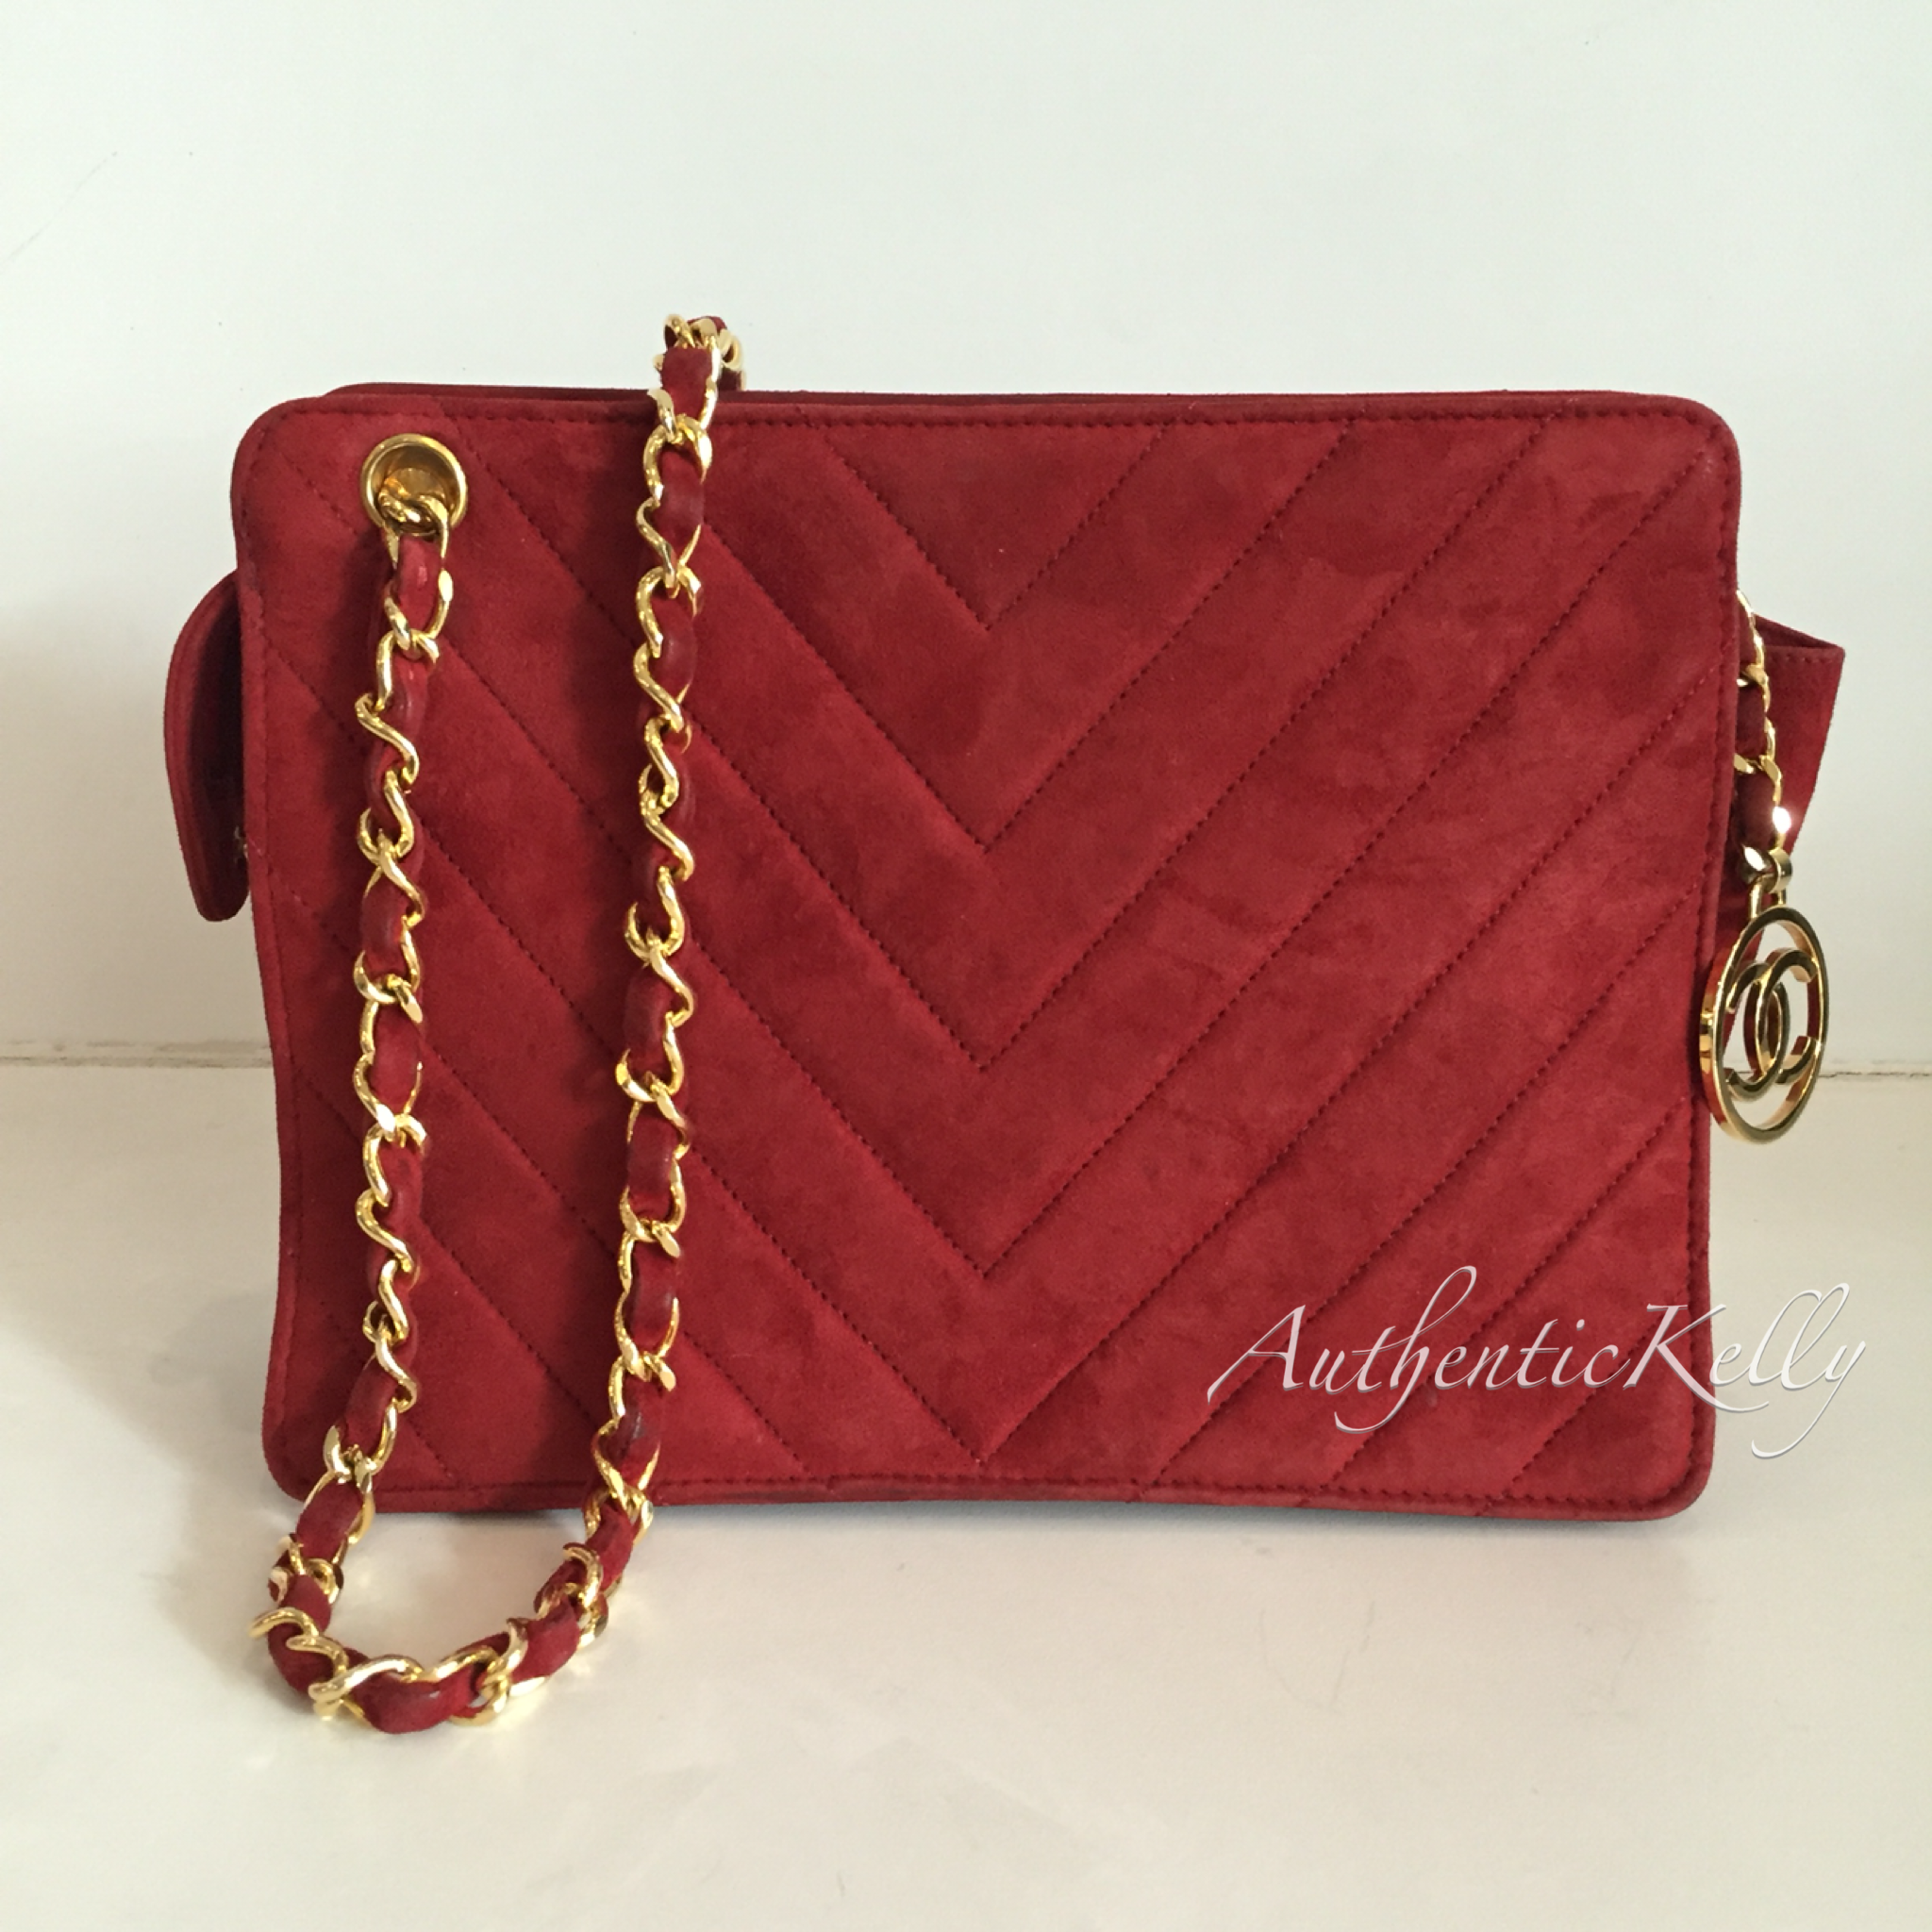 6484ee2317ab CHANEL Red Suede Vintage GHW Sling Bag – AuthenticKelly